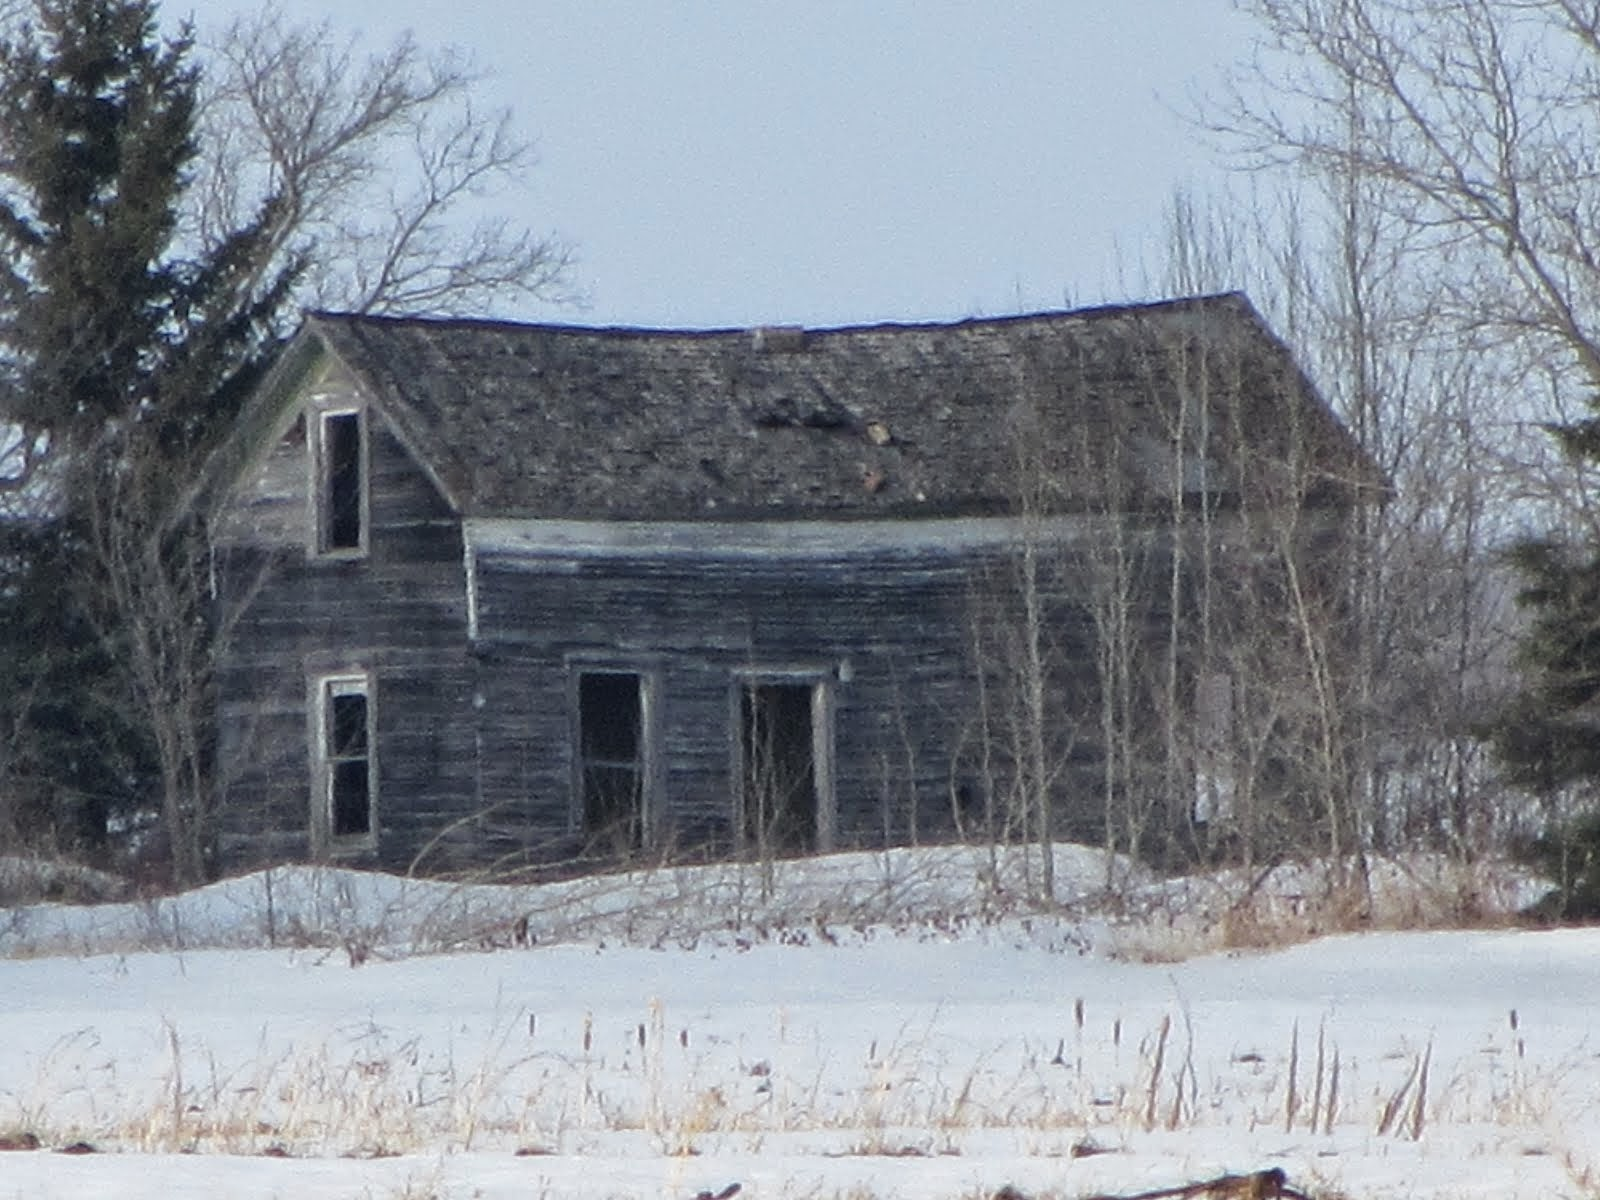 Old abandoned homestead near Thief River Falls, Minnesota